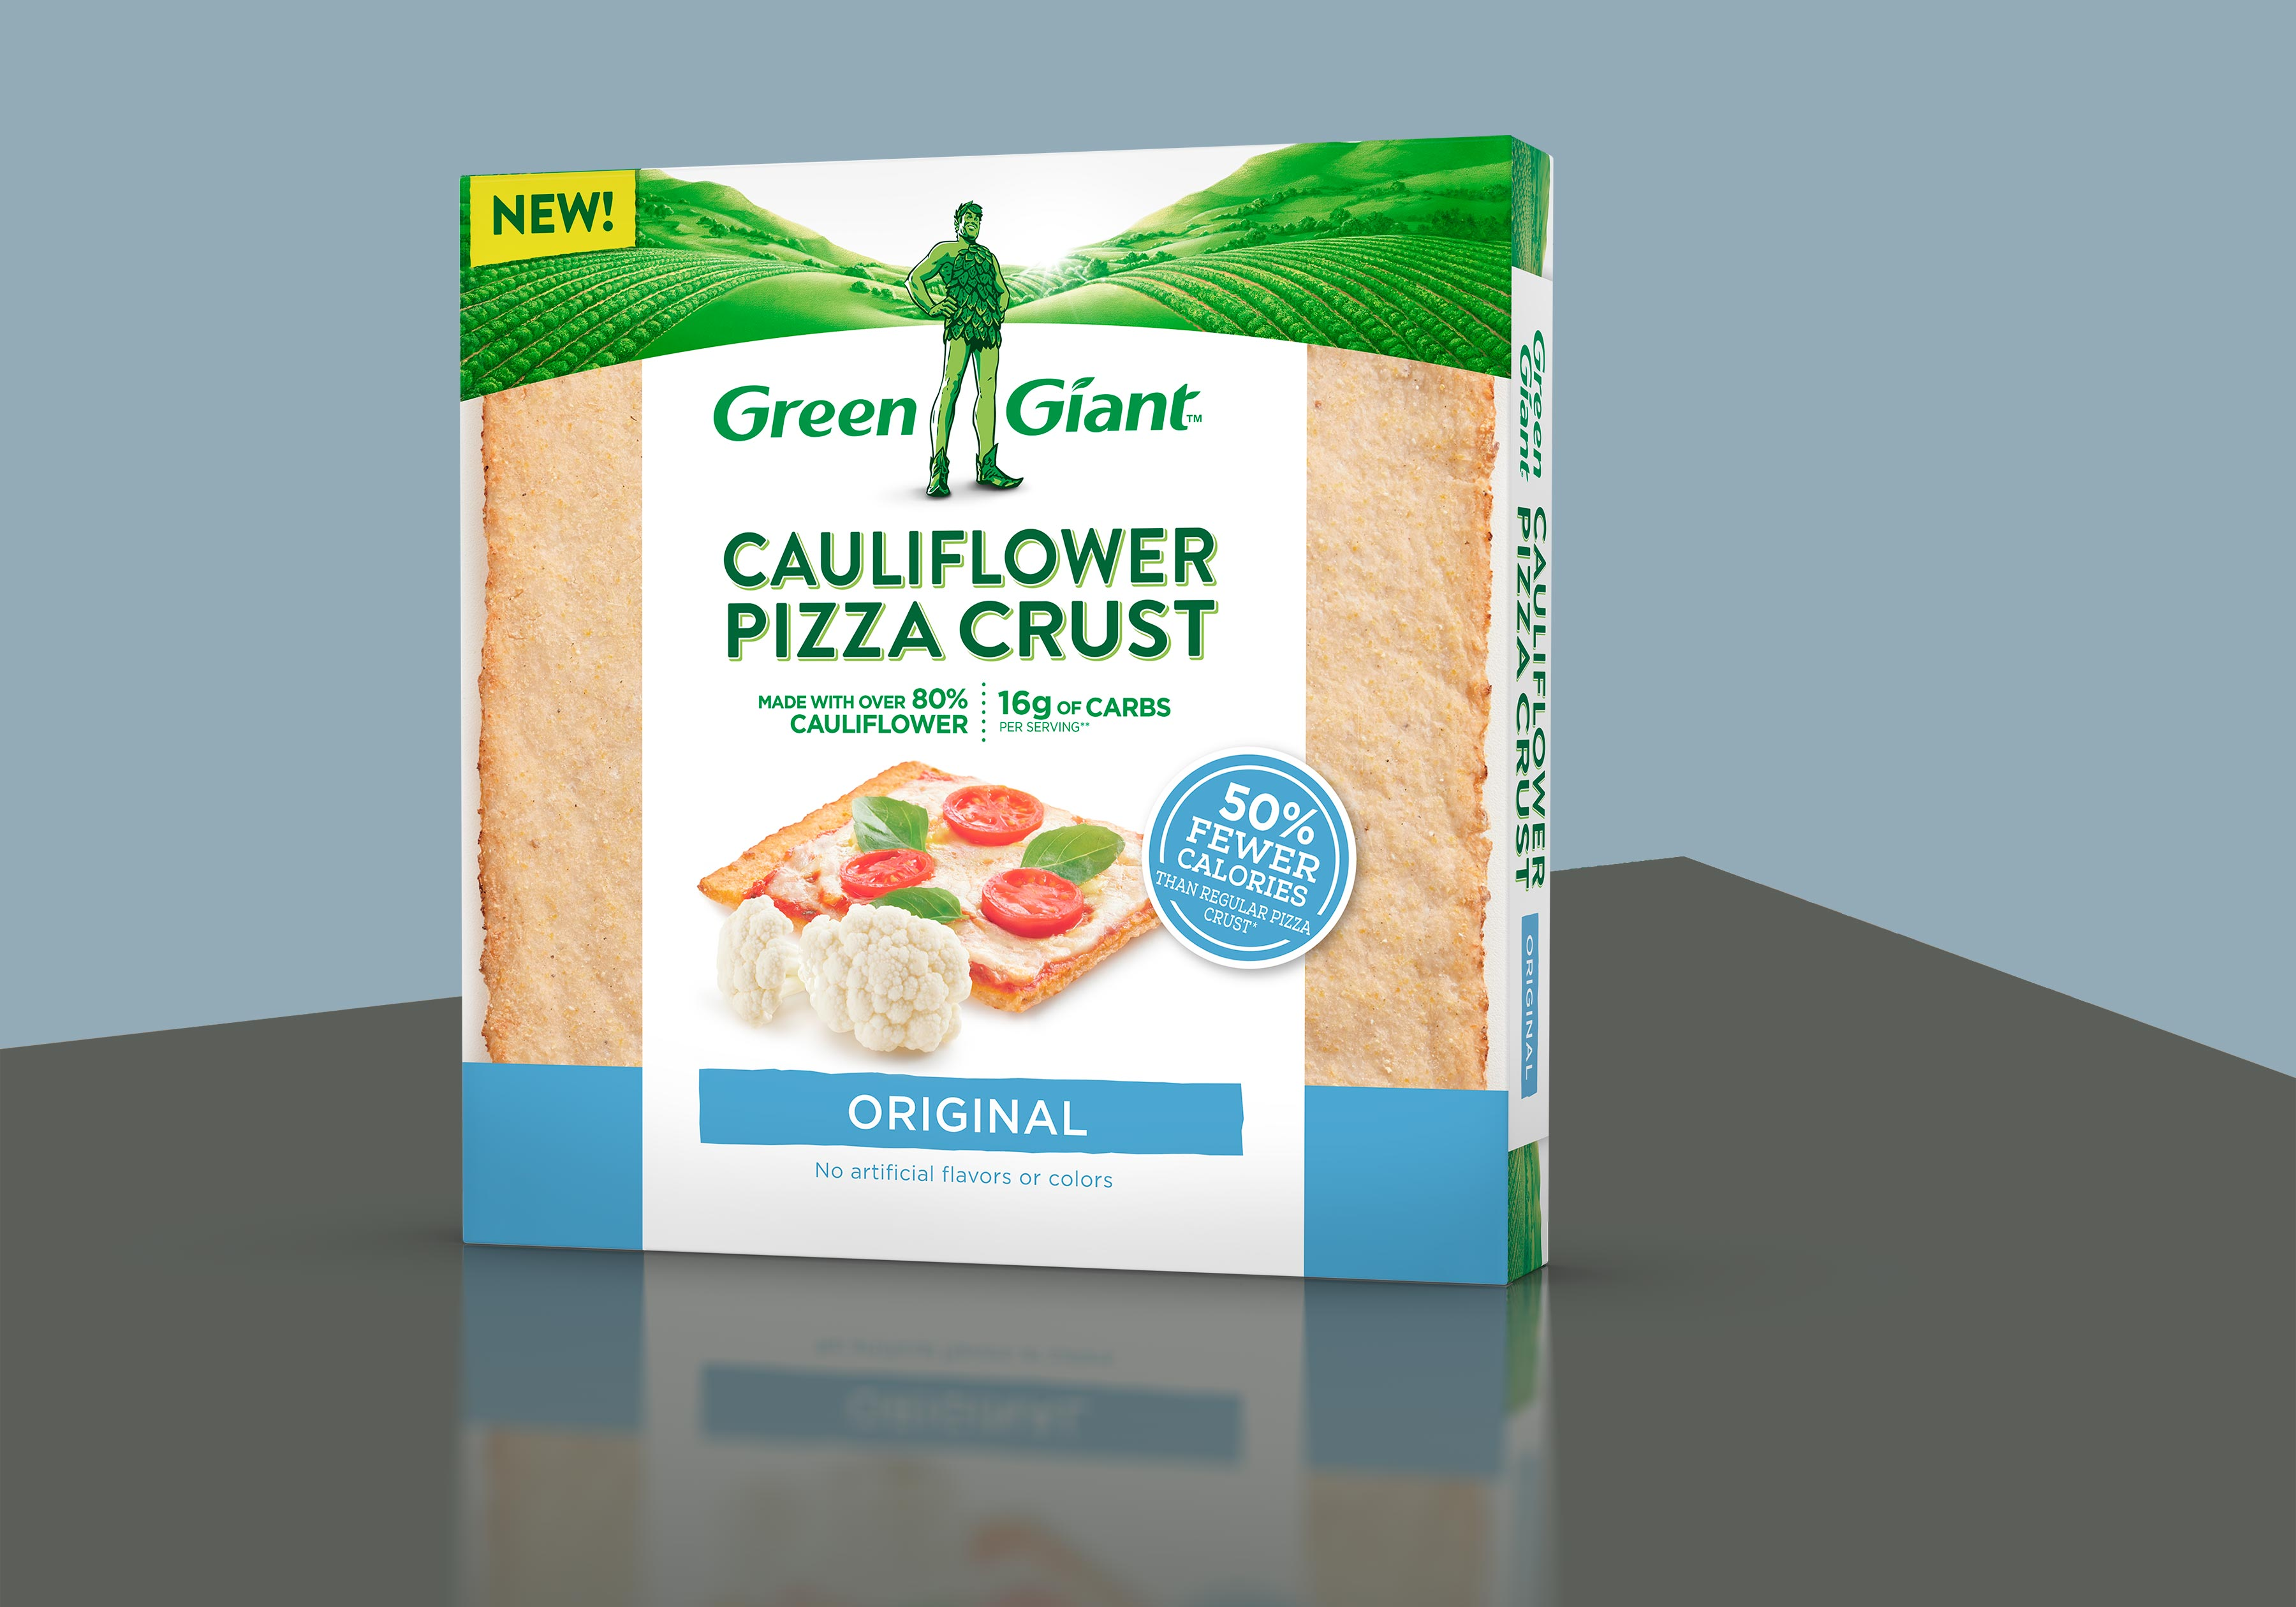 Green_Giant_Cauliflower_Pizza_Crust_Original